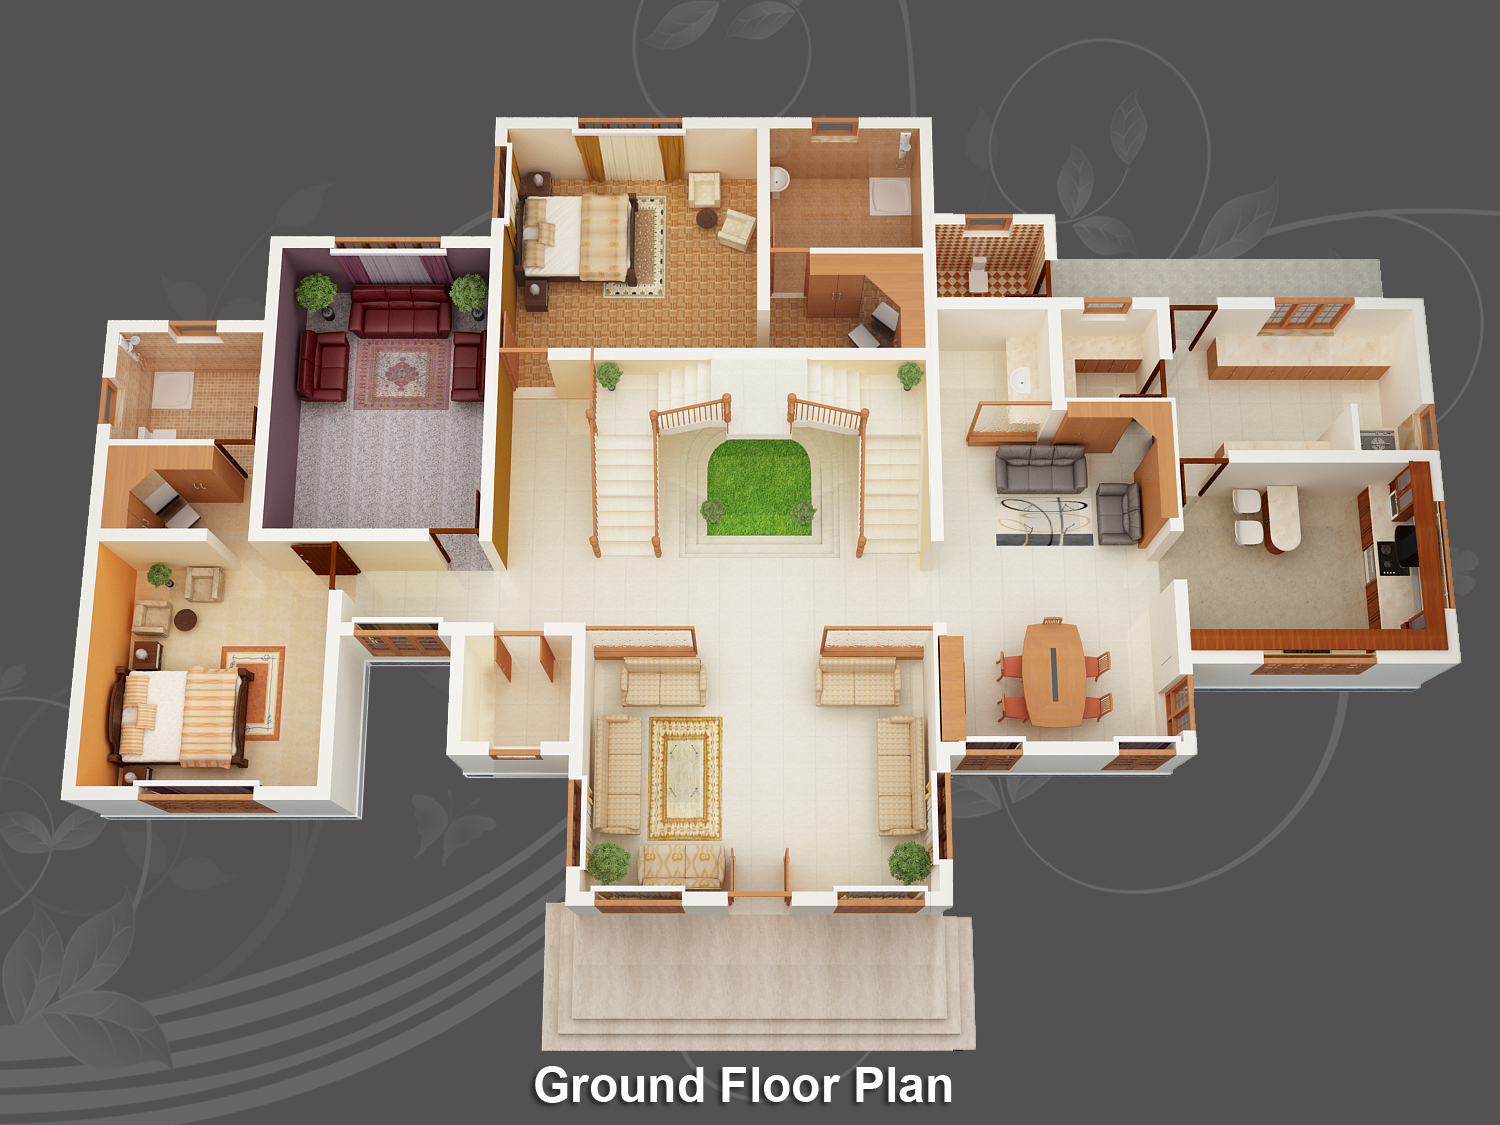 Evens construction pvt ltd 3d house plan 20 05 2011 Architecture design house plans 3d